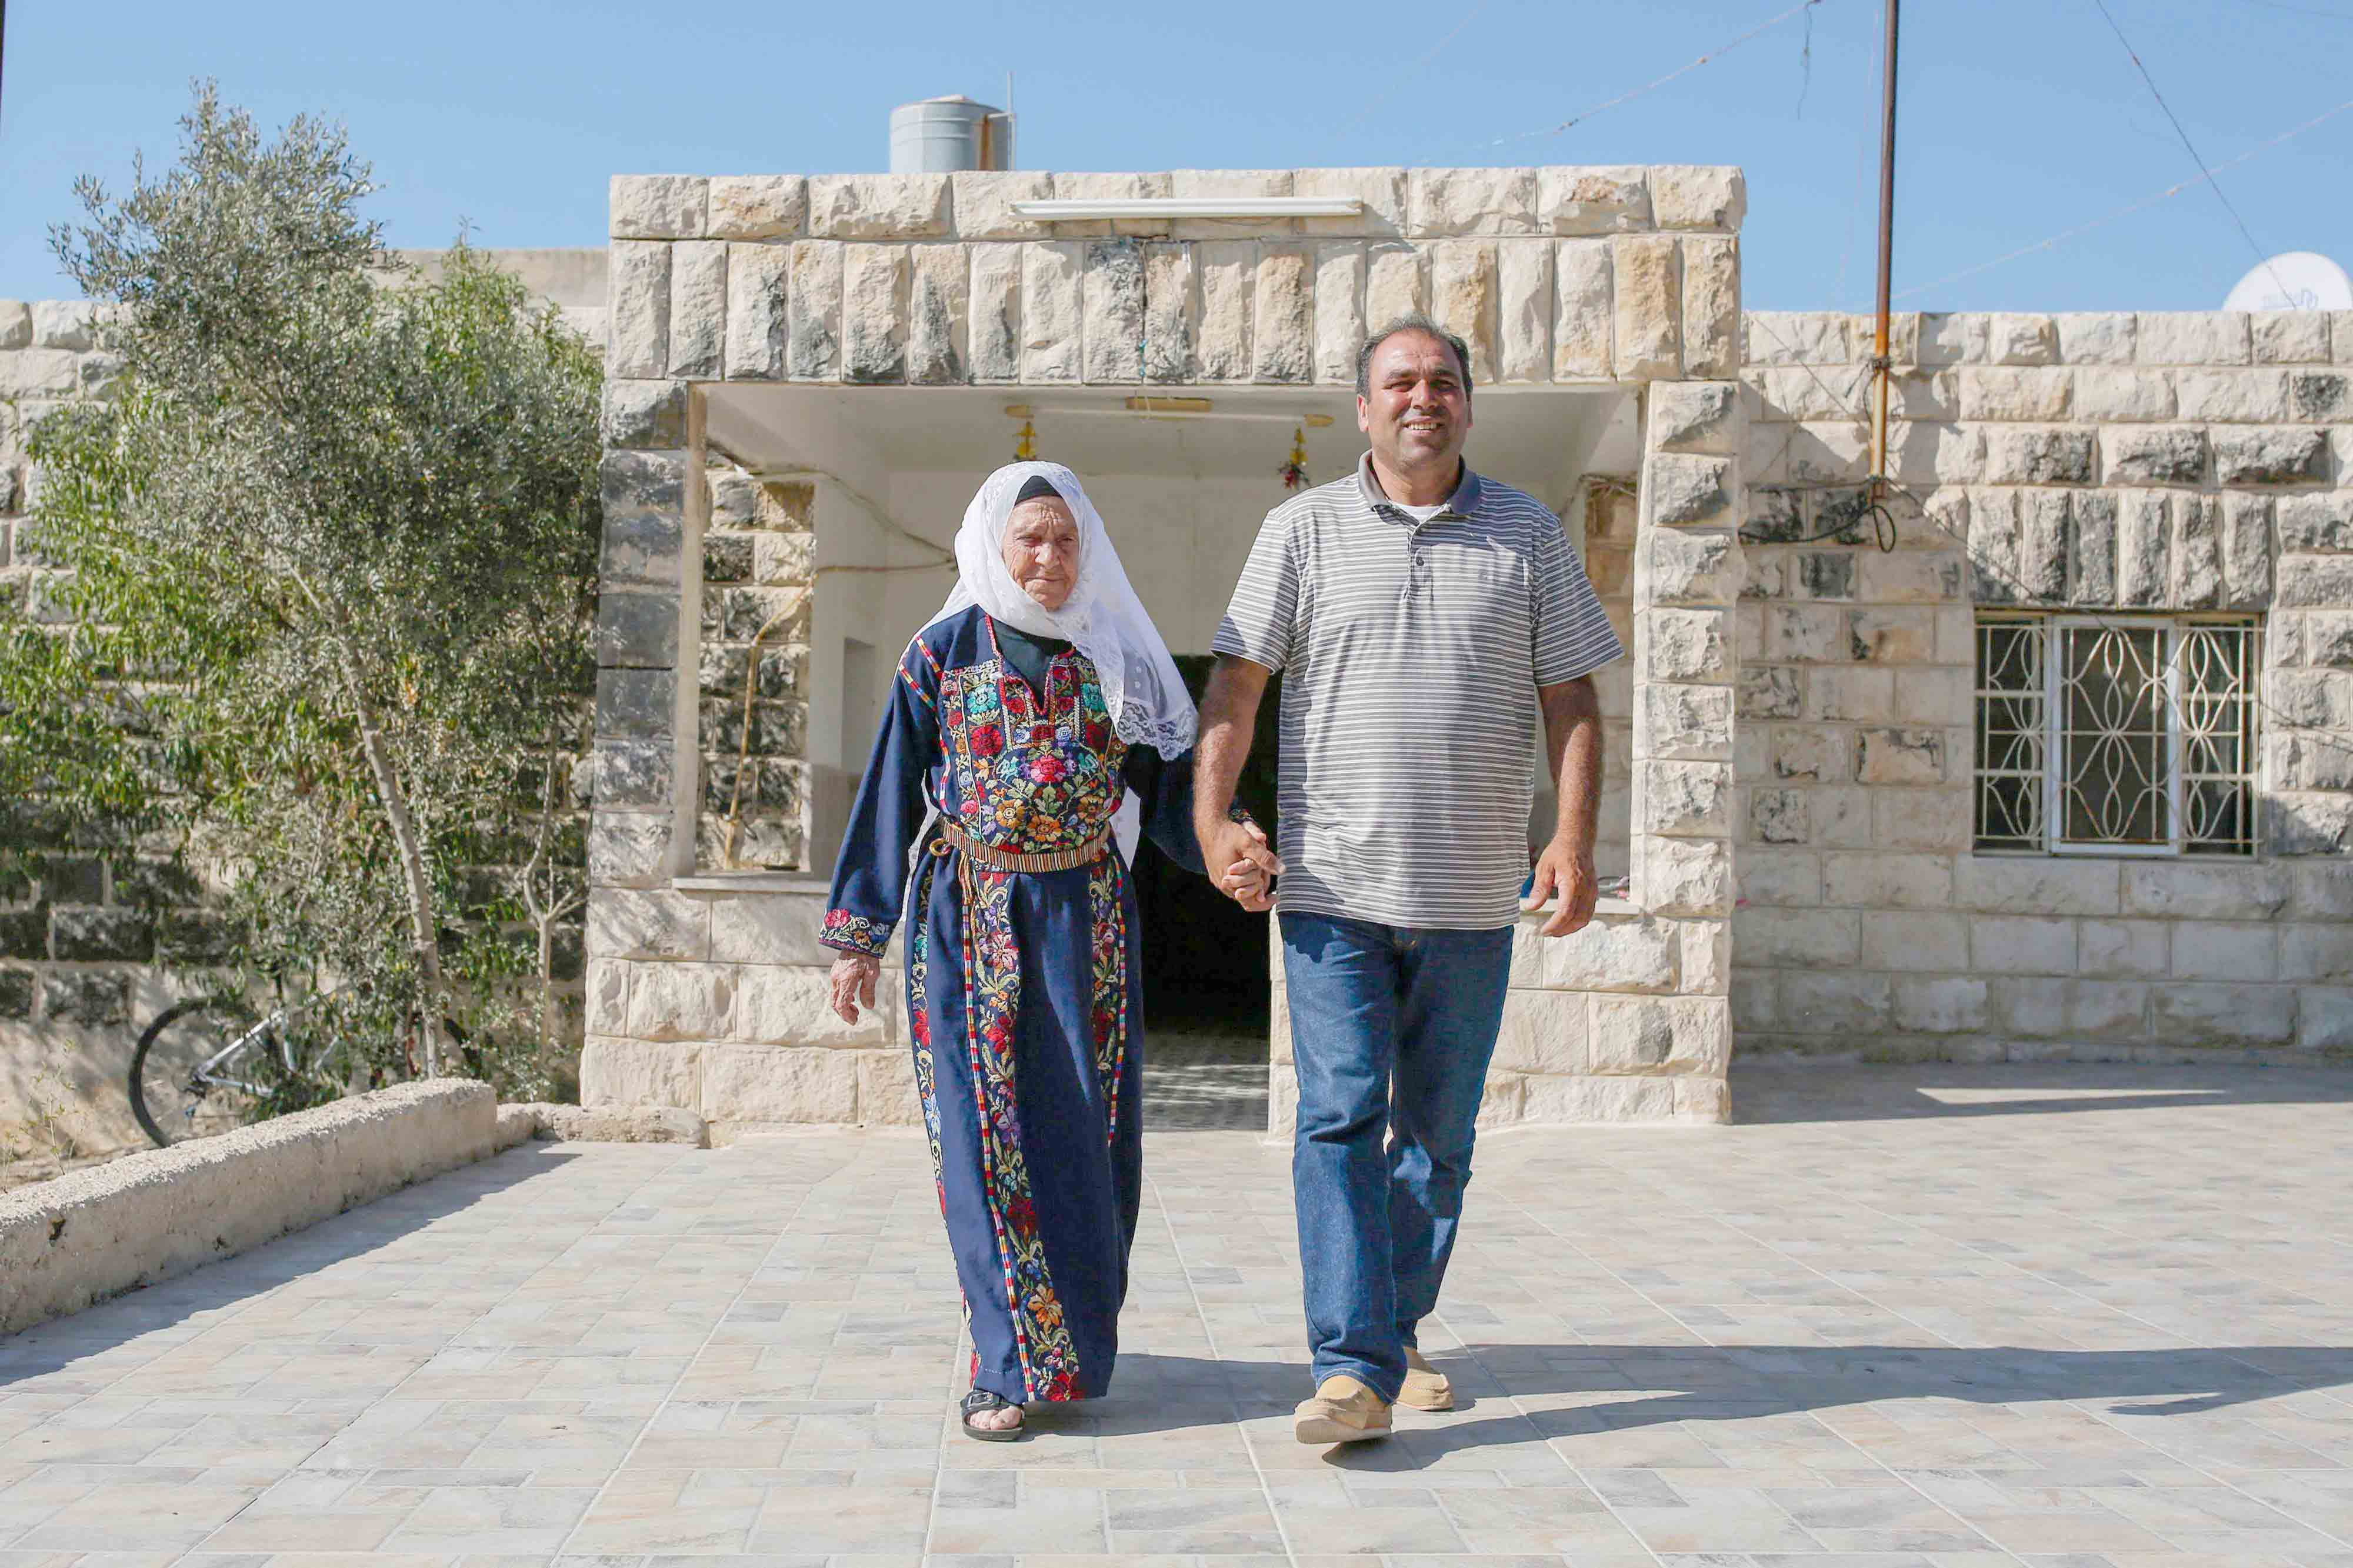 Muftia Tlaib, the maternal grandmother of US Representative Rashida Tlaib, walks with her son Bassam (R) outside their home in the village of Beit Ur al-Fauqa in the occupied West Bank, August 15.(AFP)